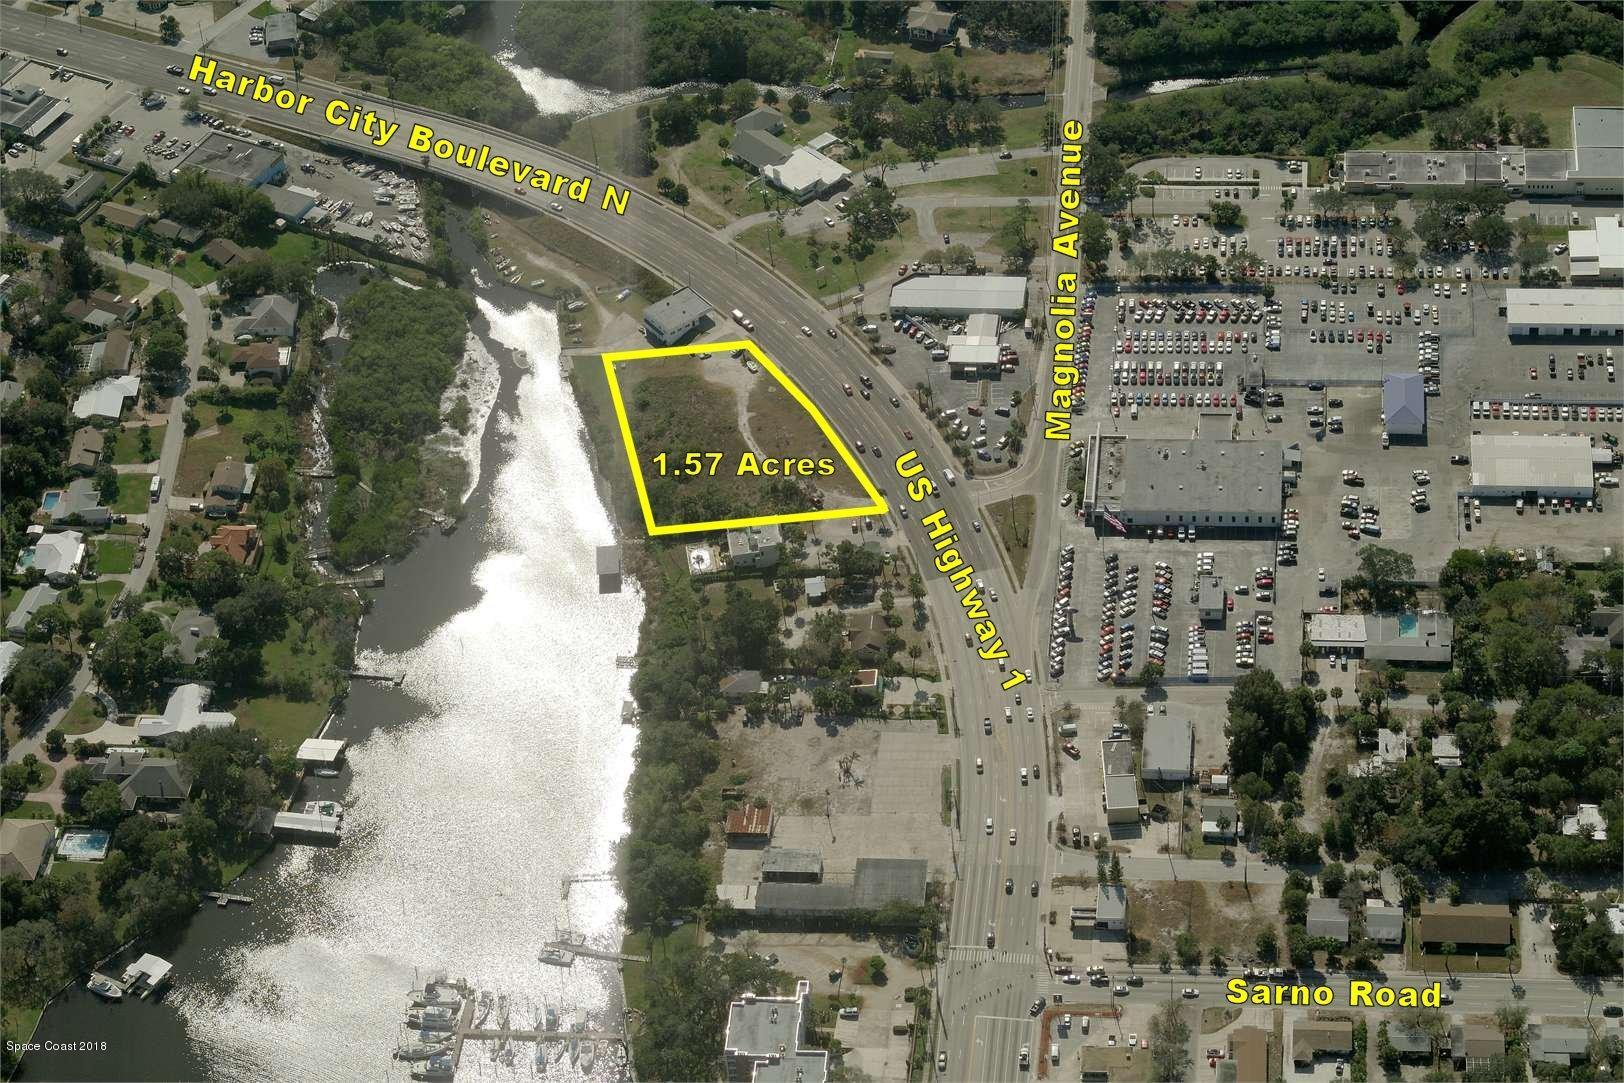 Land for Sale at Harbor City Blvd Melbourne, Florida 32935 United States